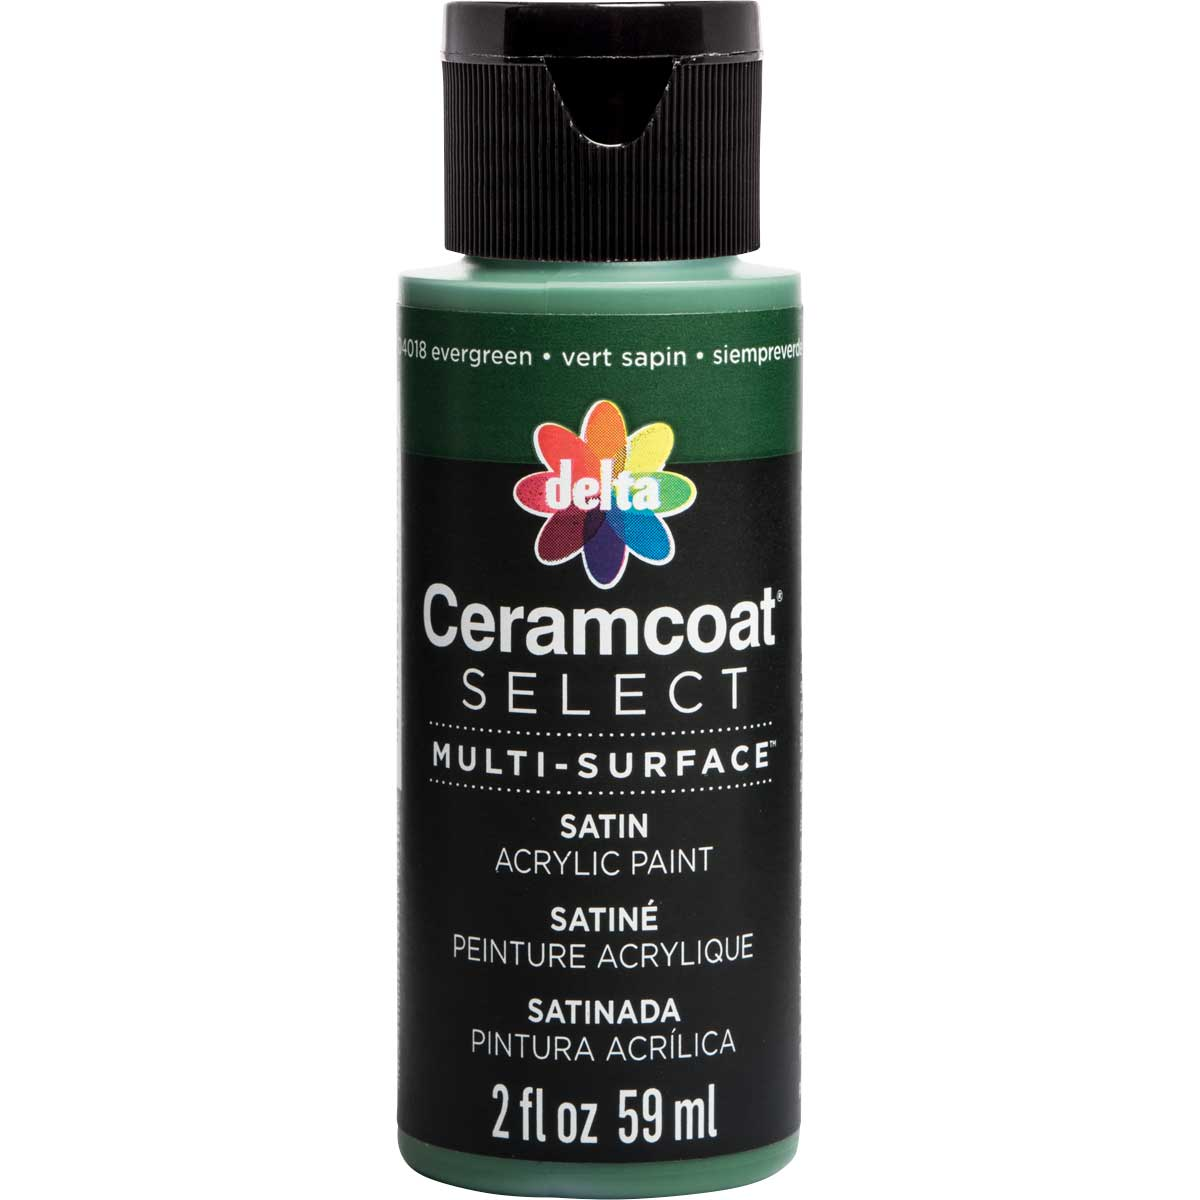 Delta Ceramcoat ® Select Multi-Surface Acrylic Paint - Satin - Evergreen, 2 oz. - 04018